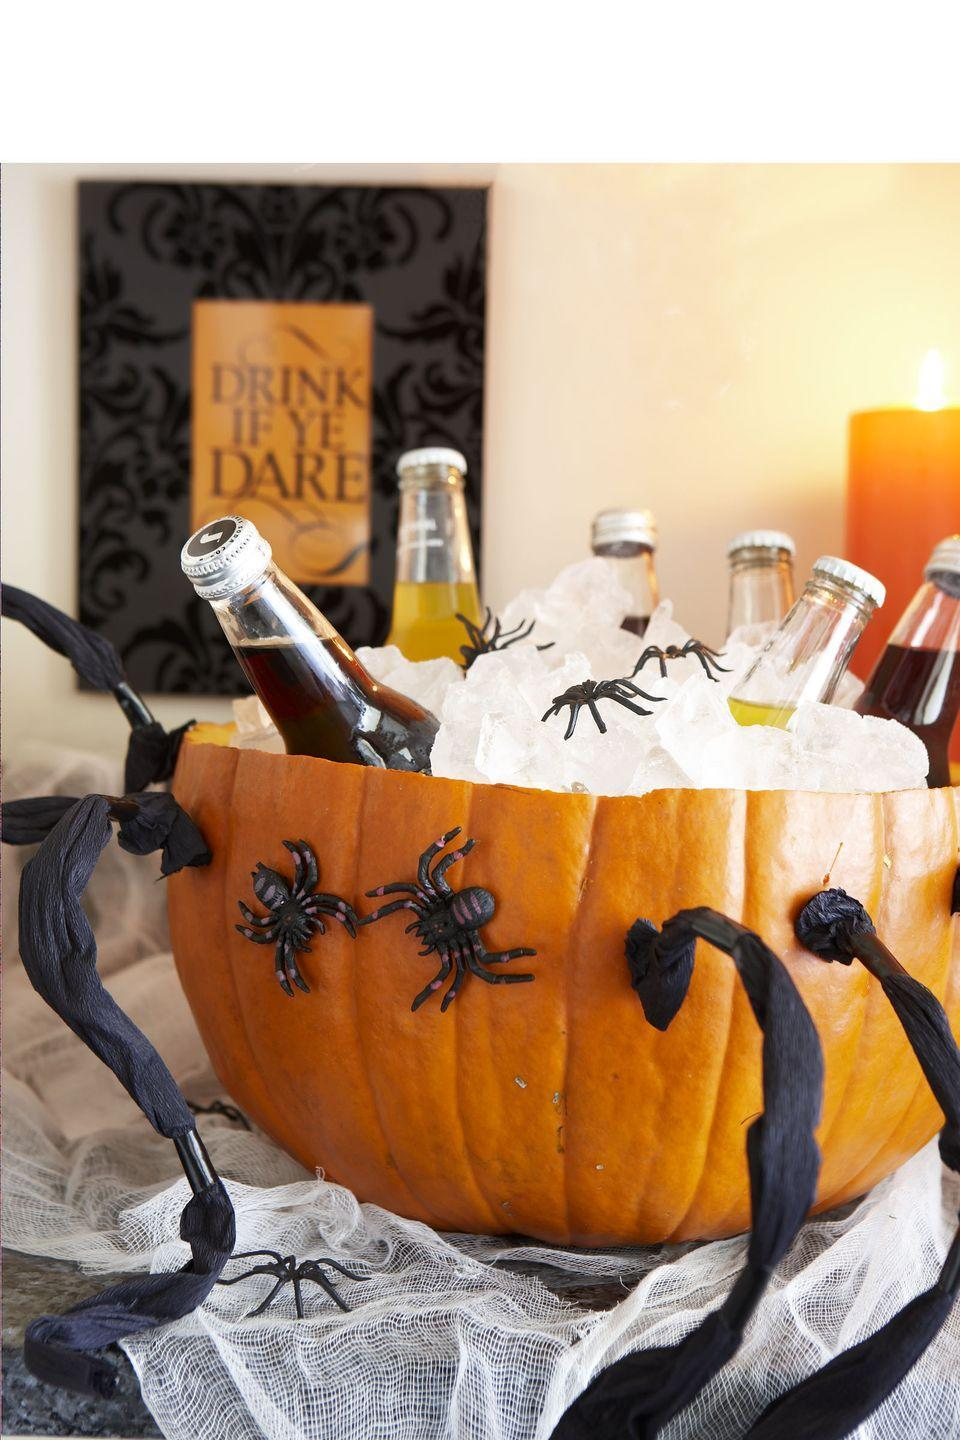 <p>Cut a large pumpkin in half and scoop the insides out of the bottom portion. Fill with ice and decorate it with faux spiders, and you've got the spookiest drink display on the block.</p>